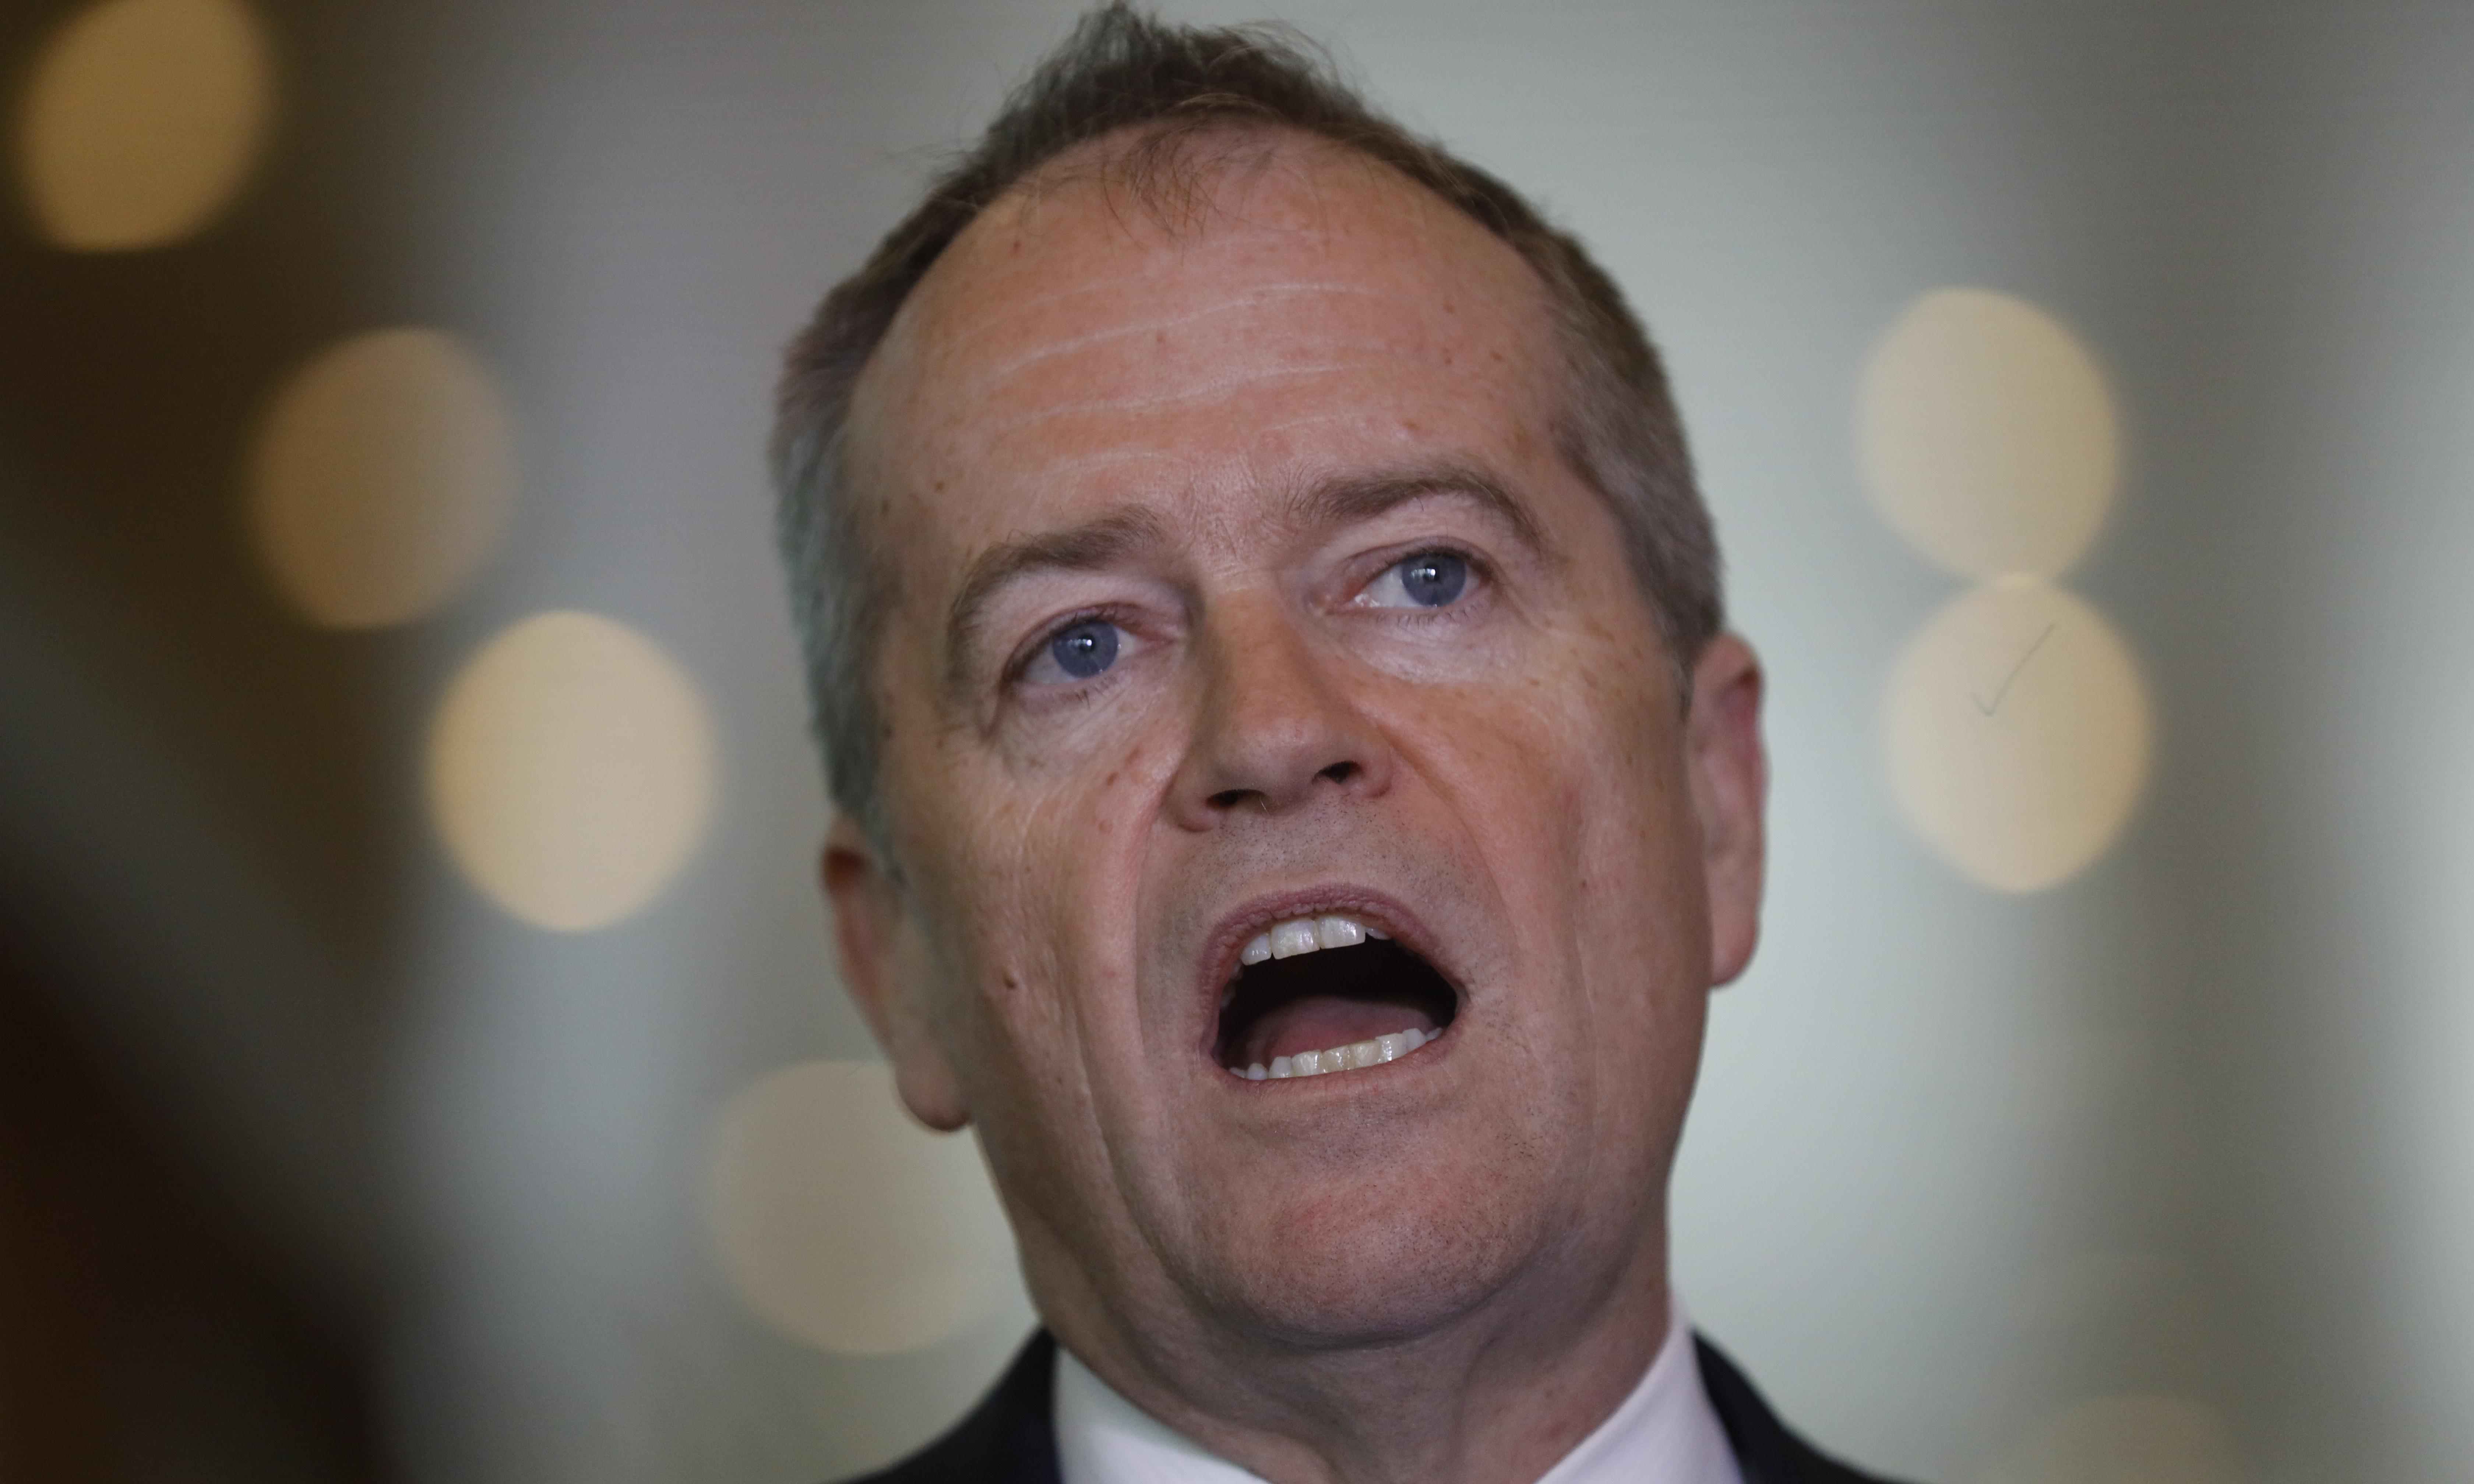 Robodebt class action: Shorten unveils 'David and Goliath' legal battle into Centrelink scheme